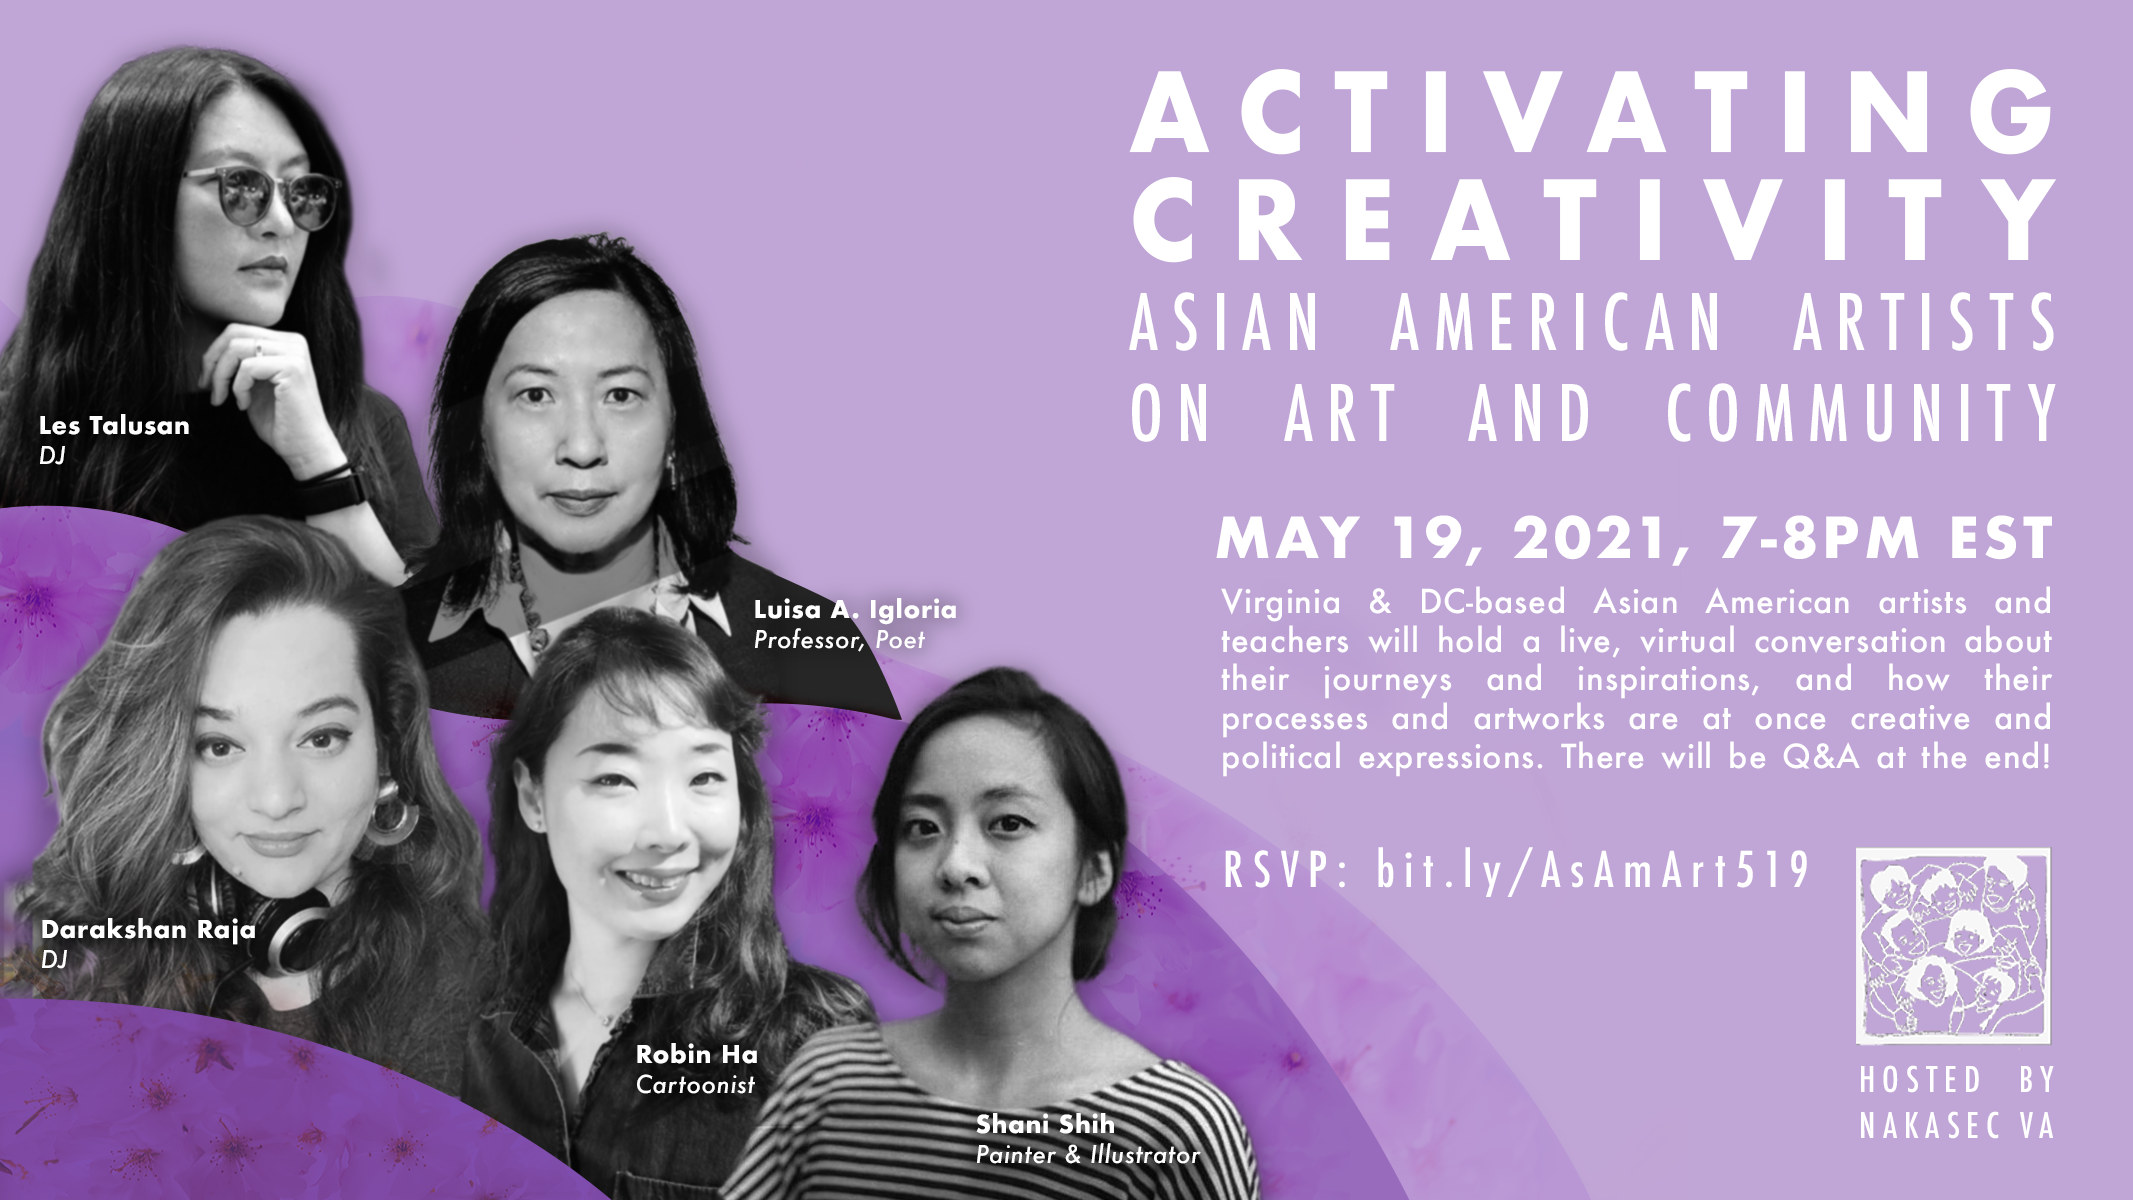 Activating Creativity: Asian American Artists on Art and Community